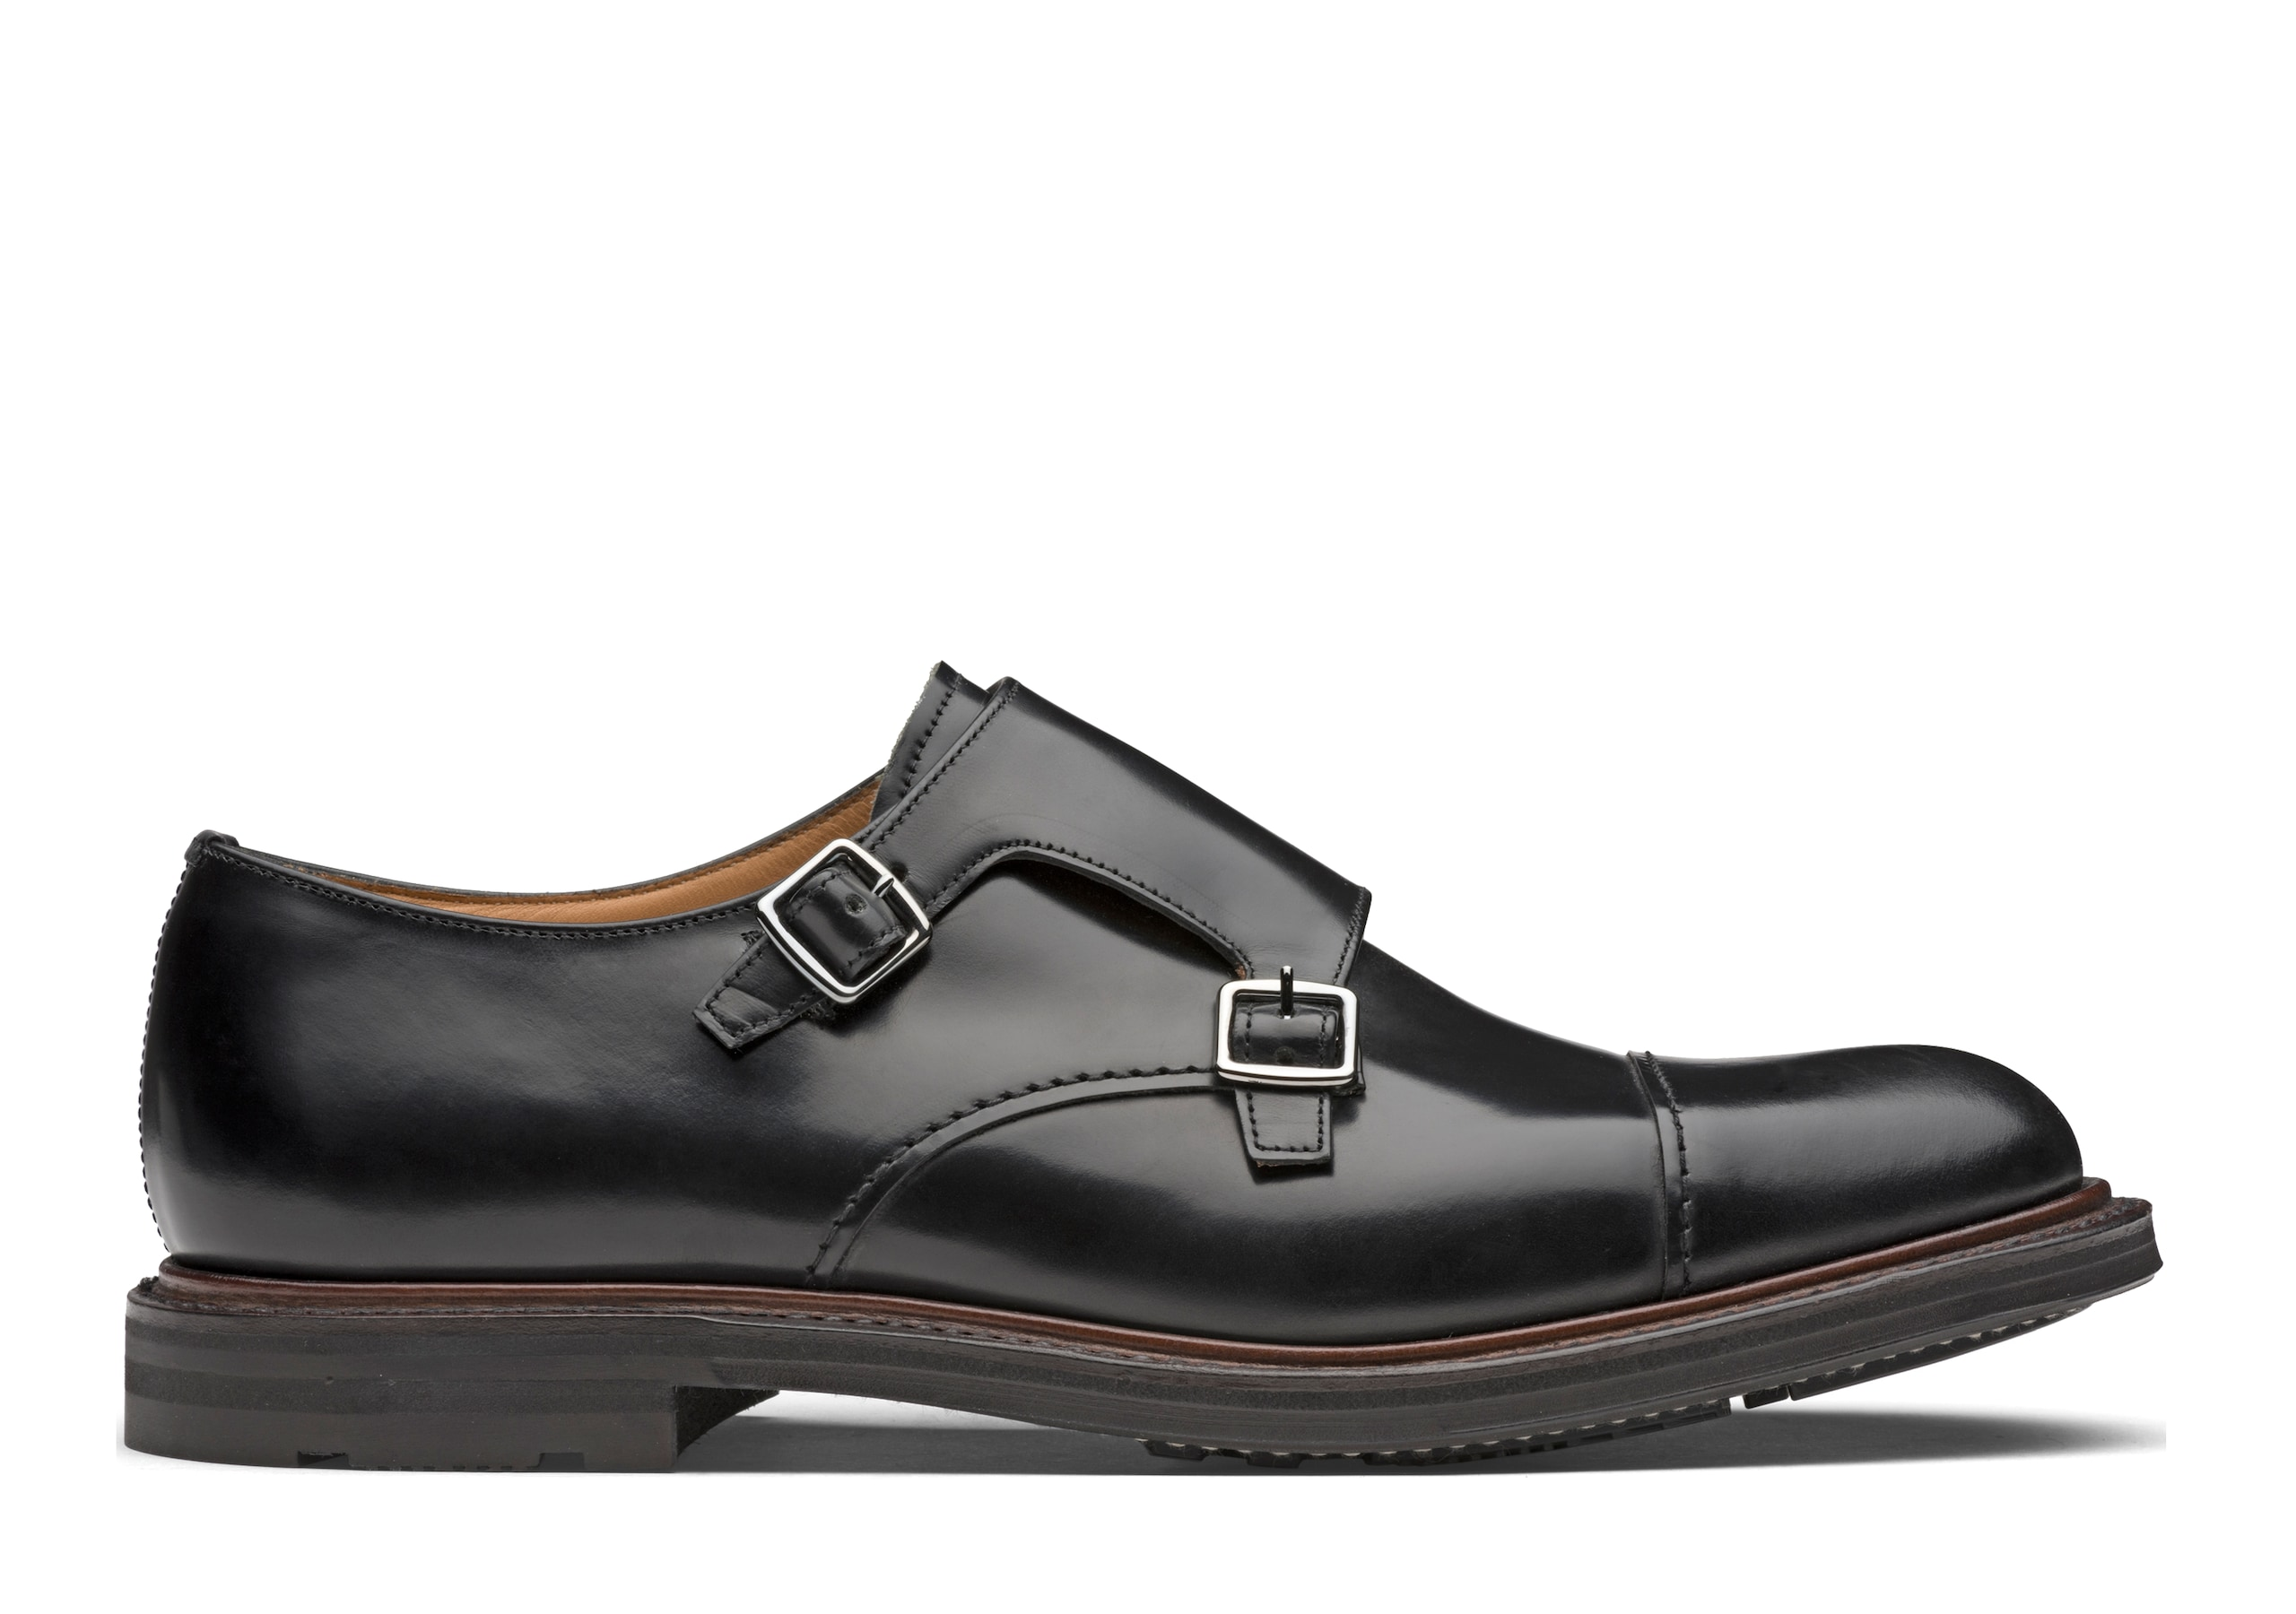 Wadebridge Church's Monk Strap in Pelle di Vitello Spazzolato Nero